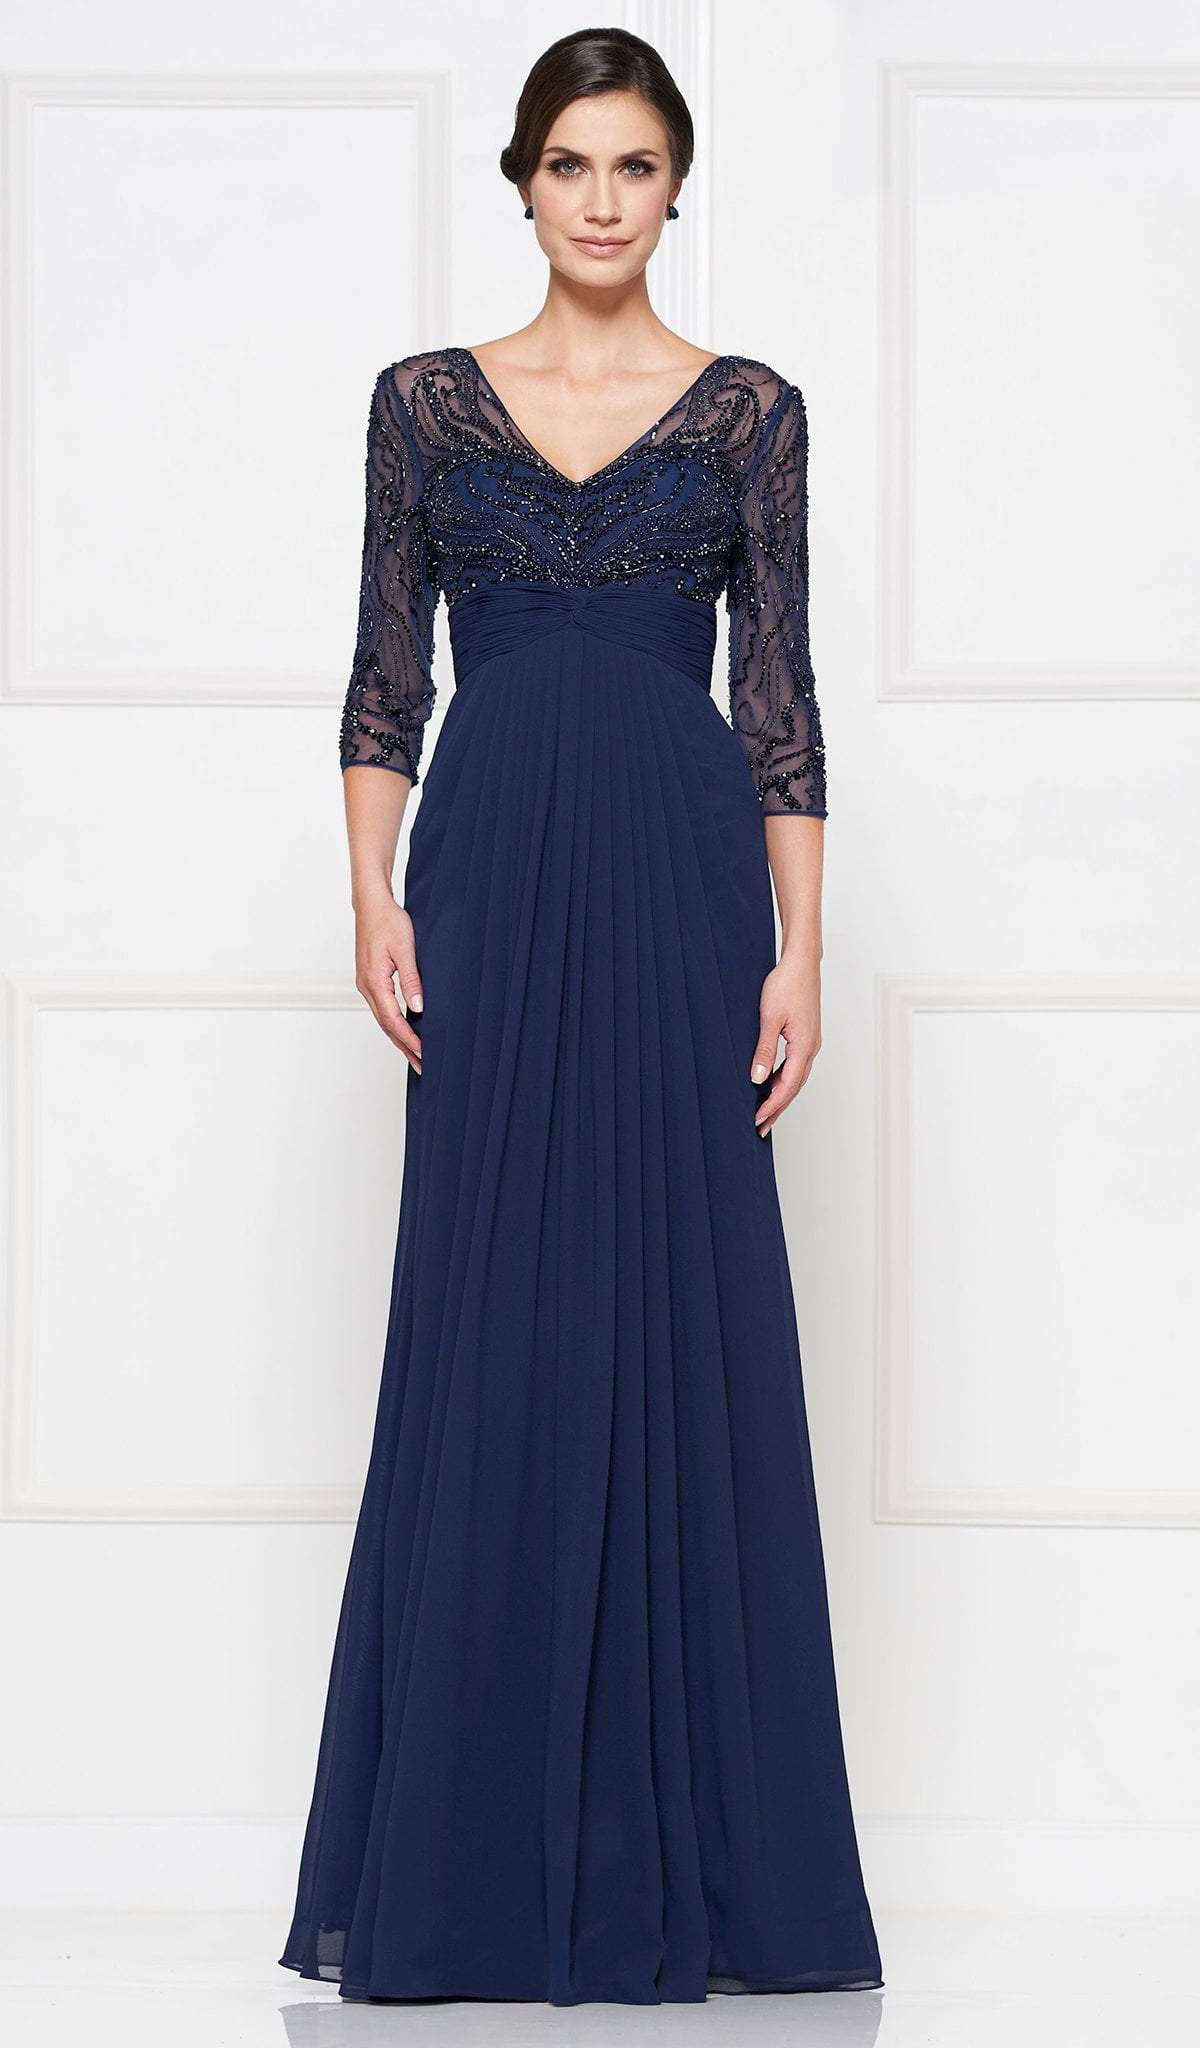 Rina Di Montella - RD2638 Embellished V-neck Pleated A-line Dress Special Occasion Dress 4 / Navy